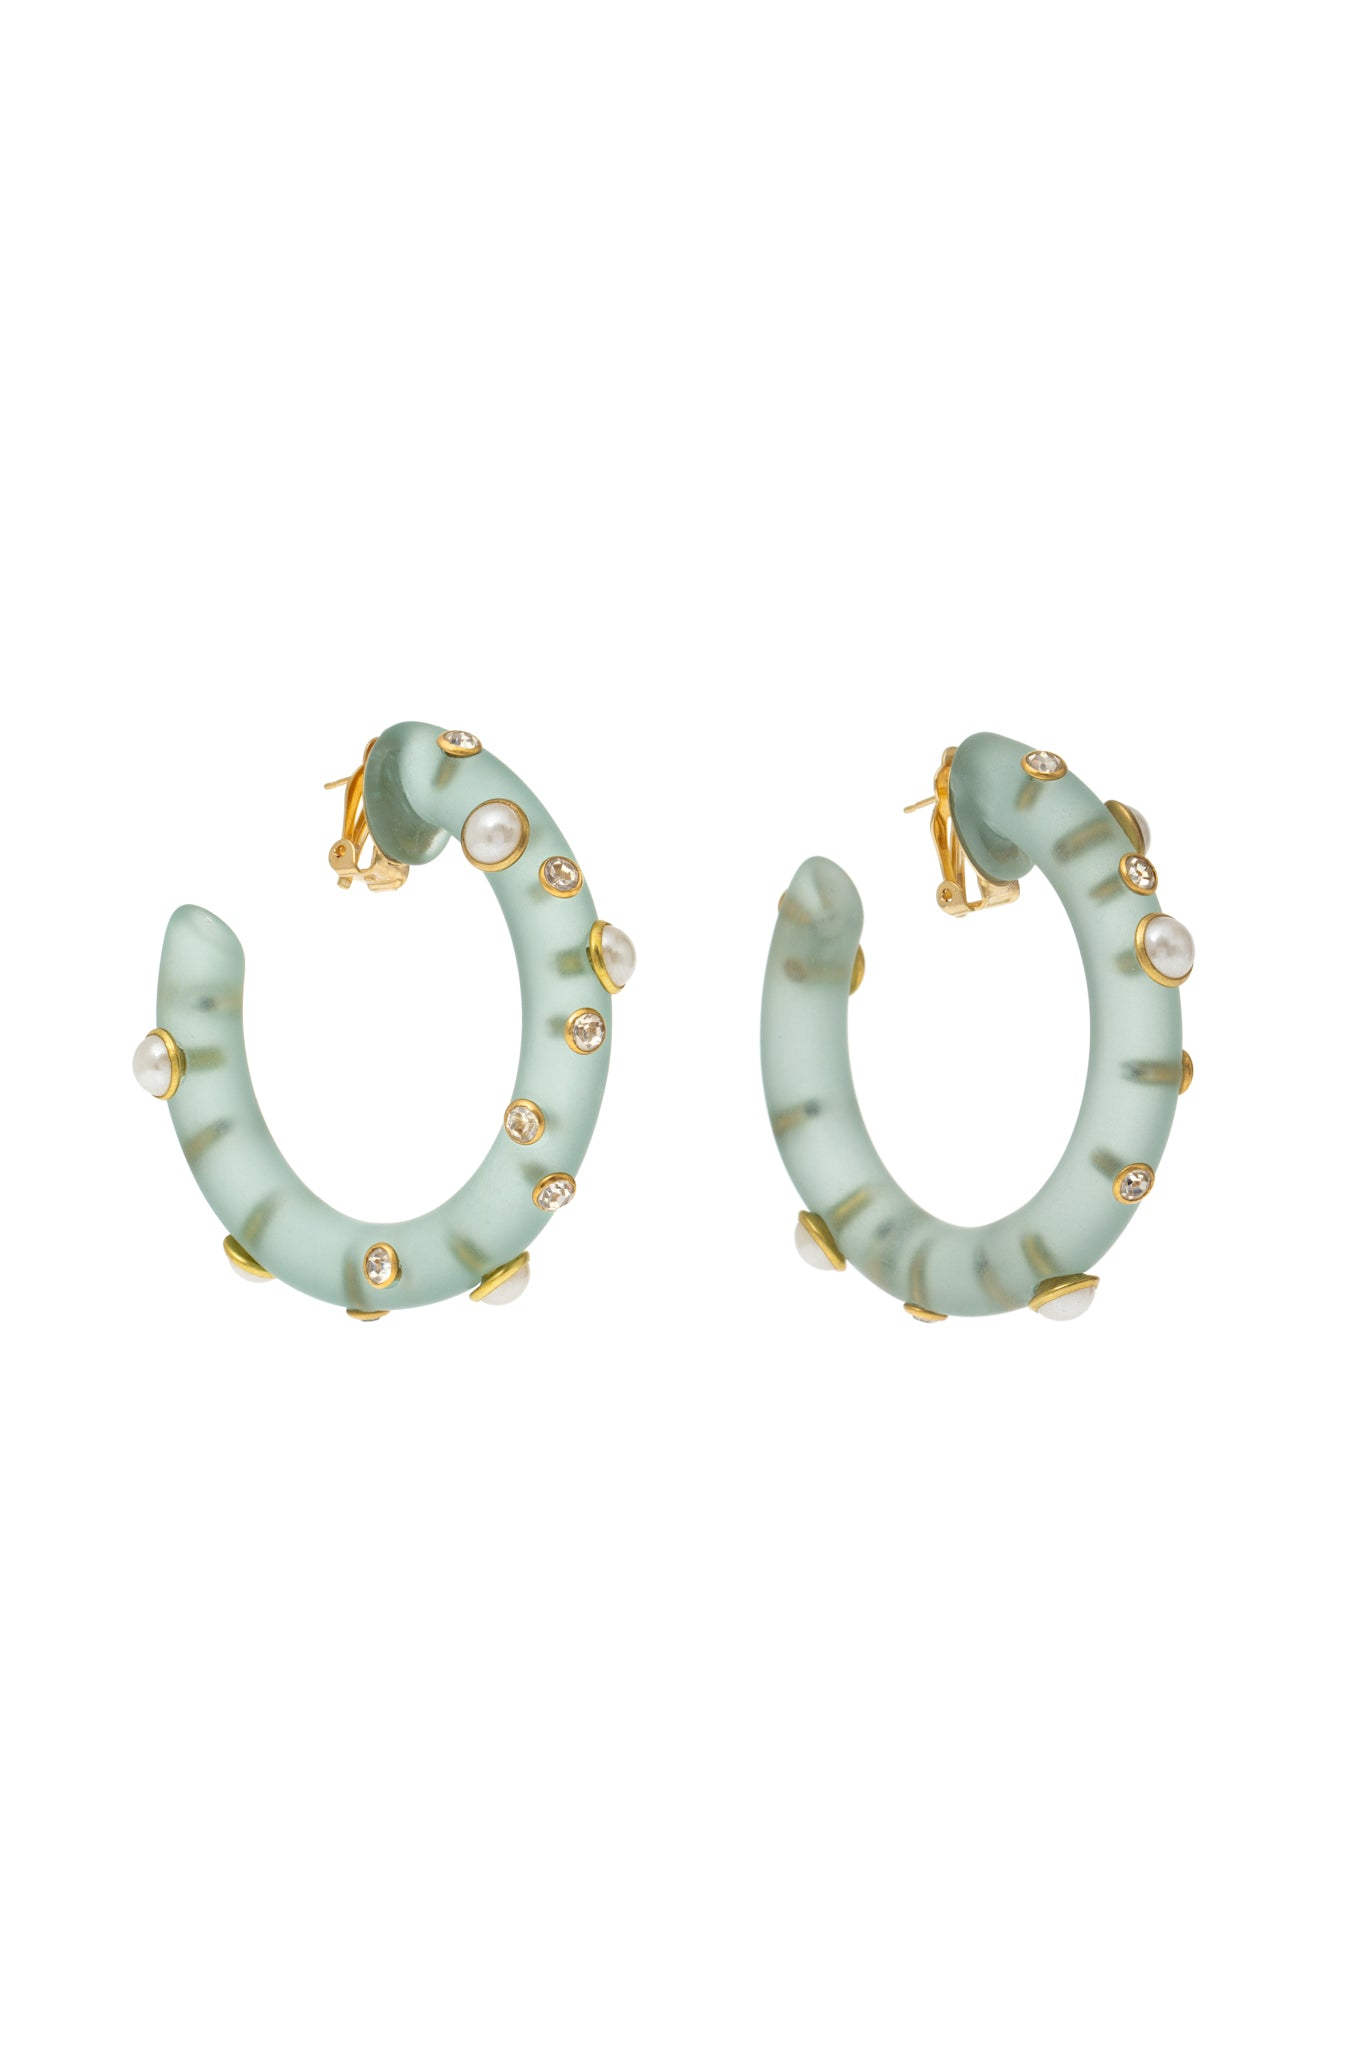 LIGHT GREEN HOOP EARRINGS WITH CRYSTALS